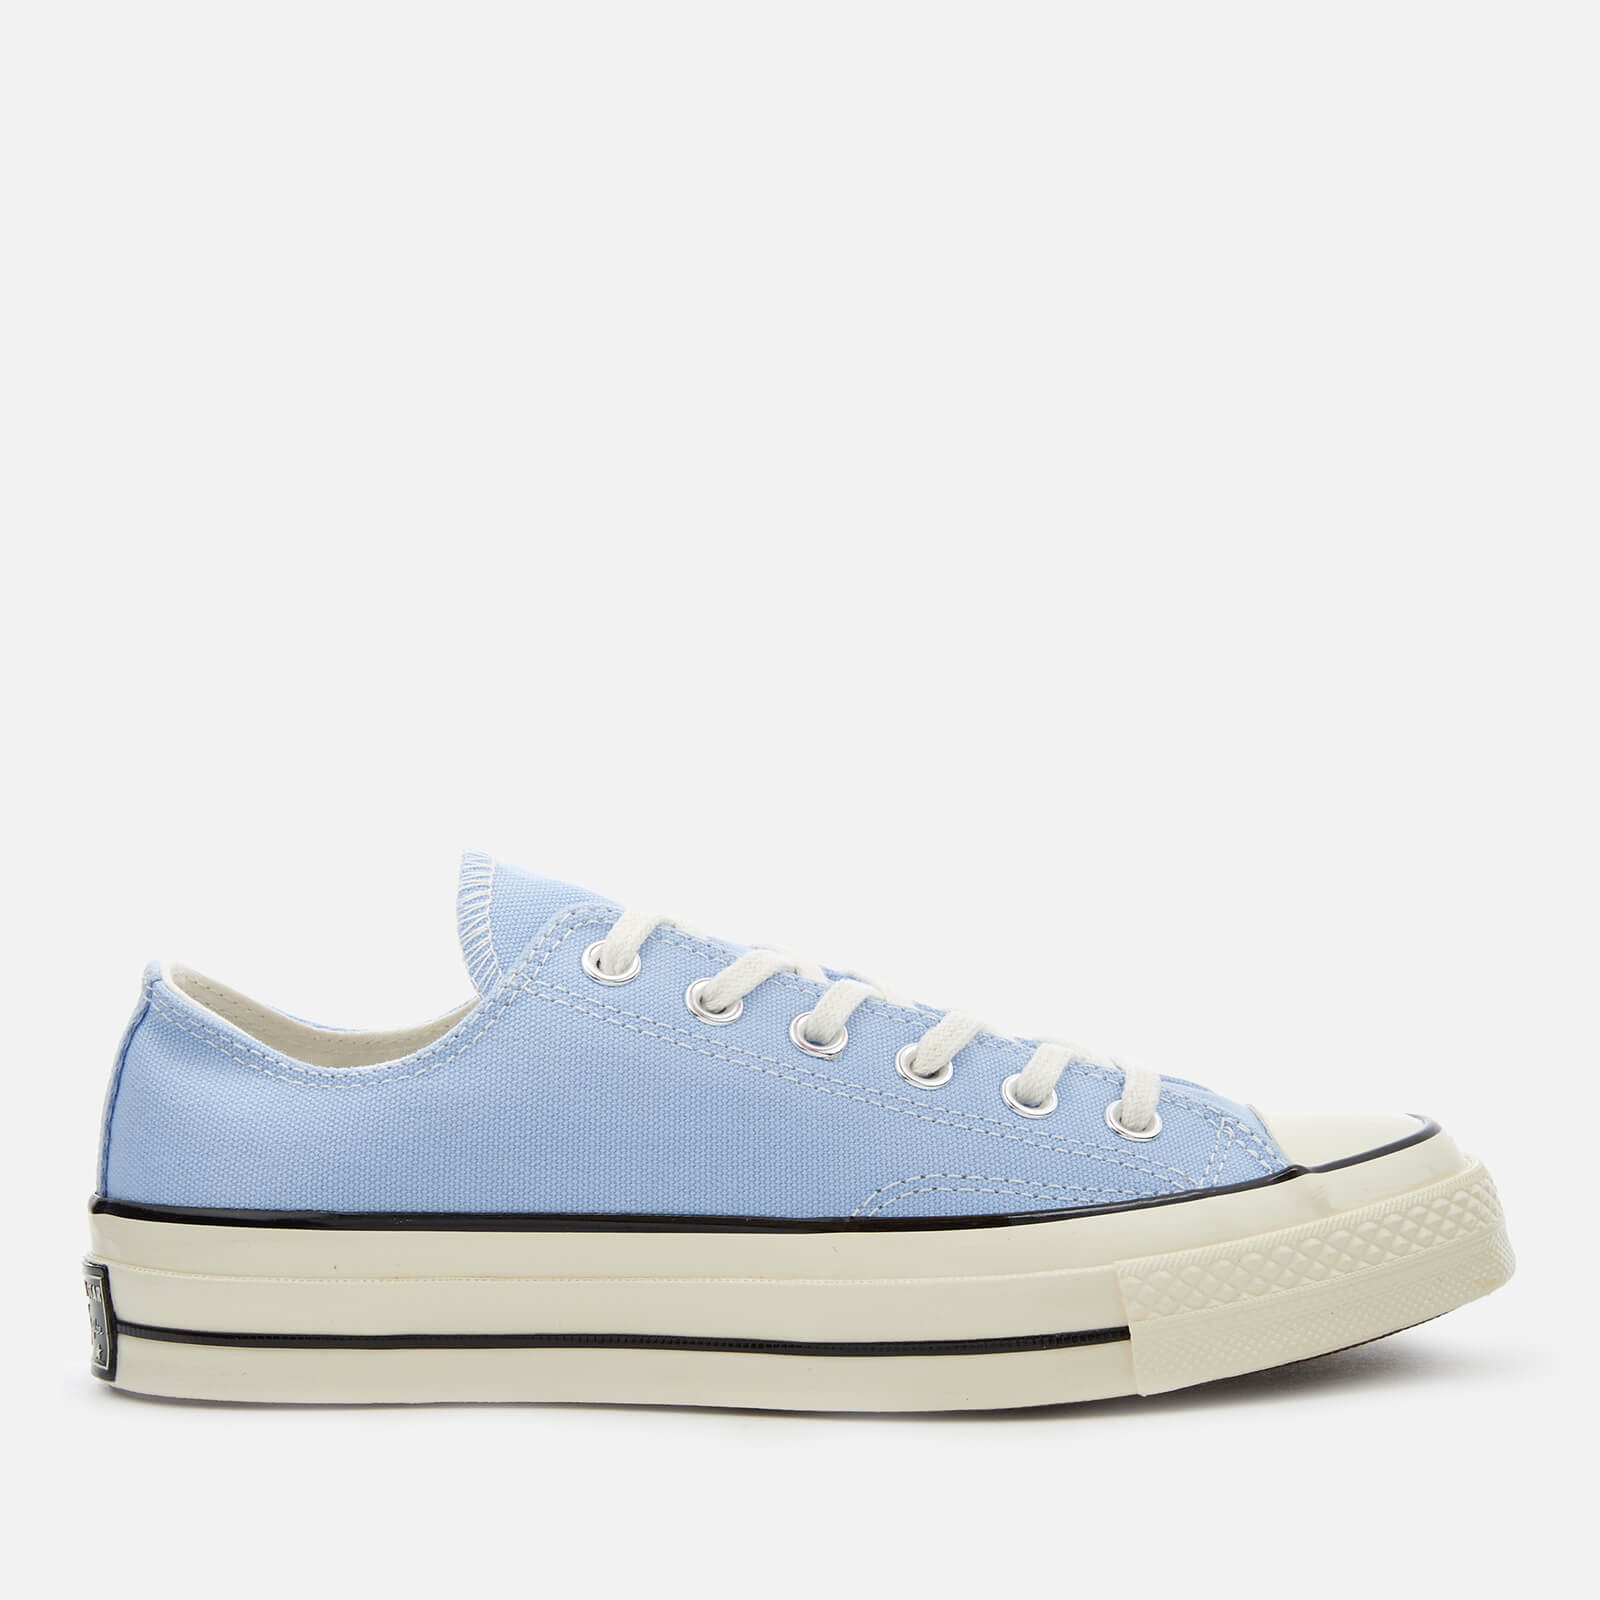 bdaf670c035e Converse Chuck Taylor All Star 70 Ox Trainers - Blue Chill Black Egret -  Free UK Delivery over £50